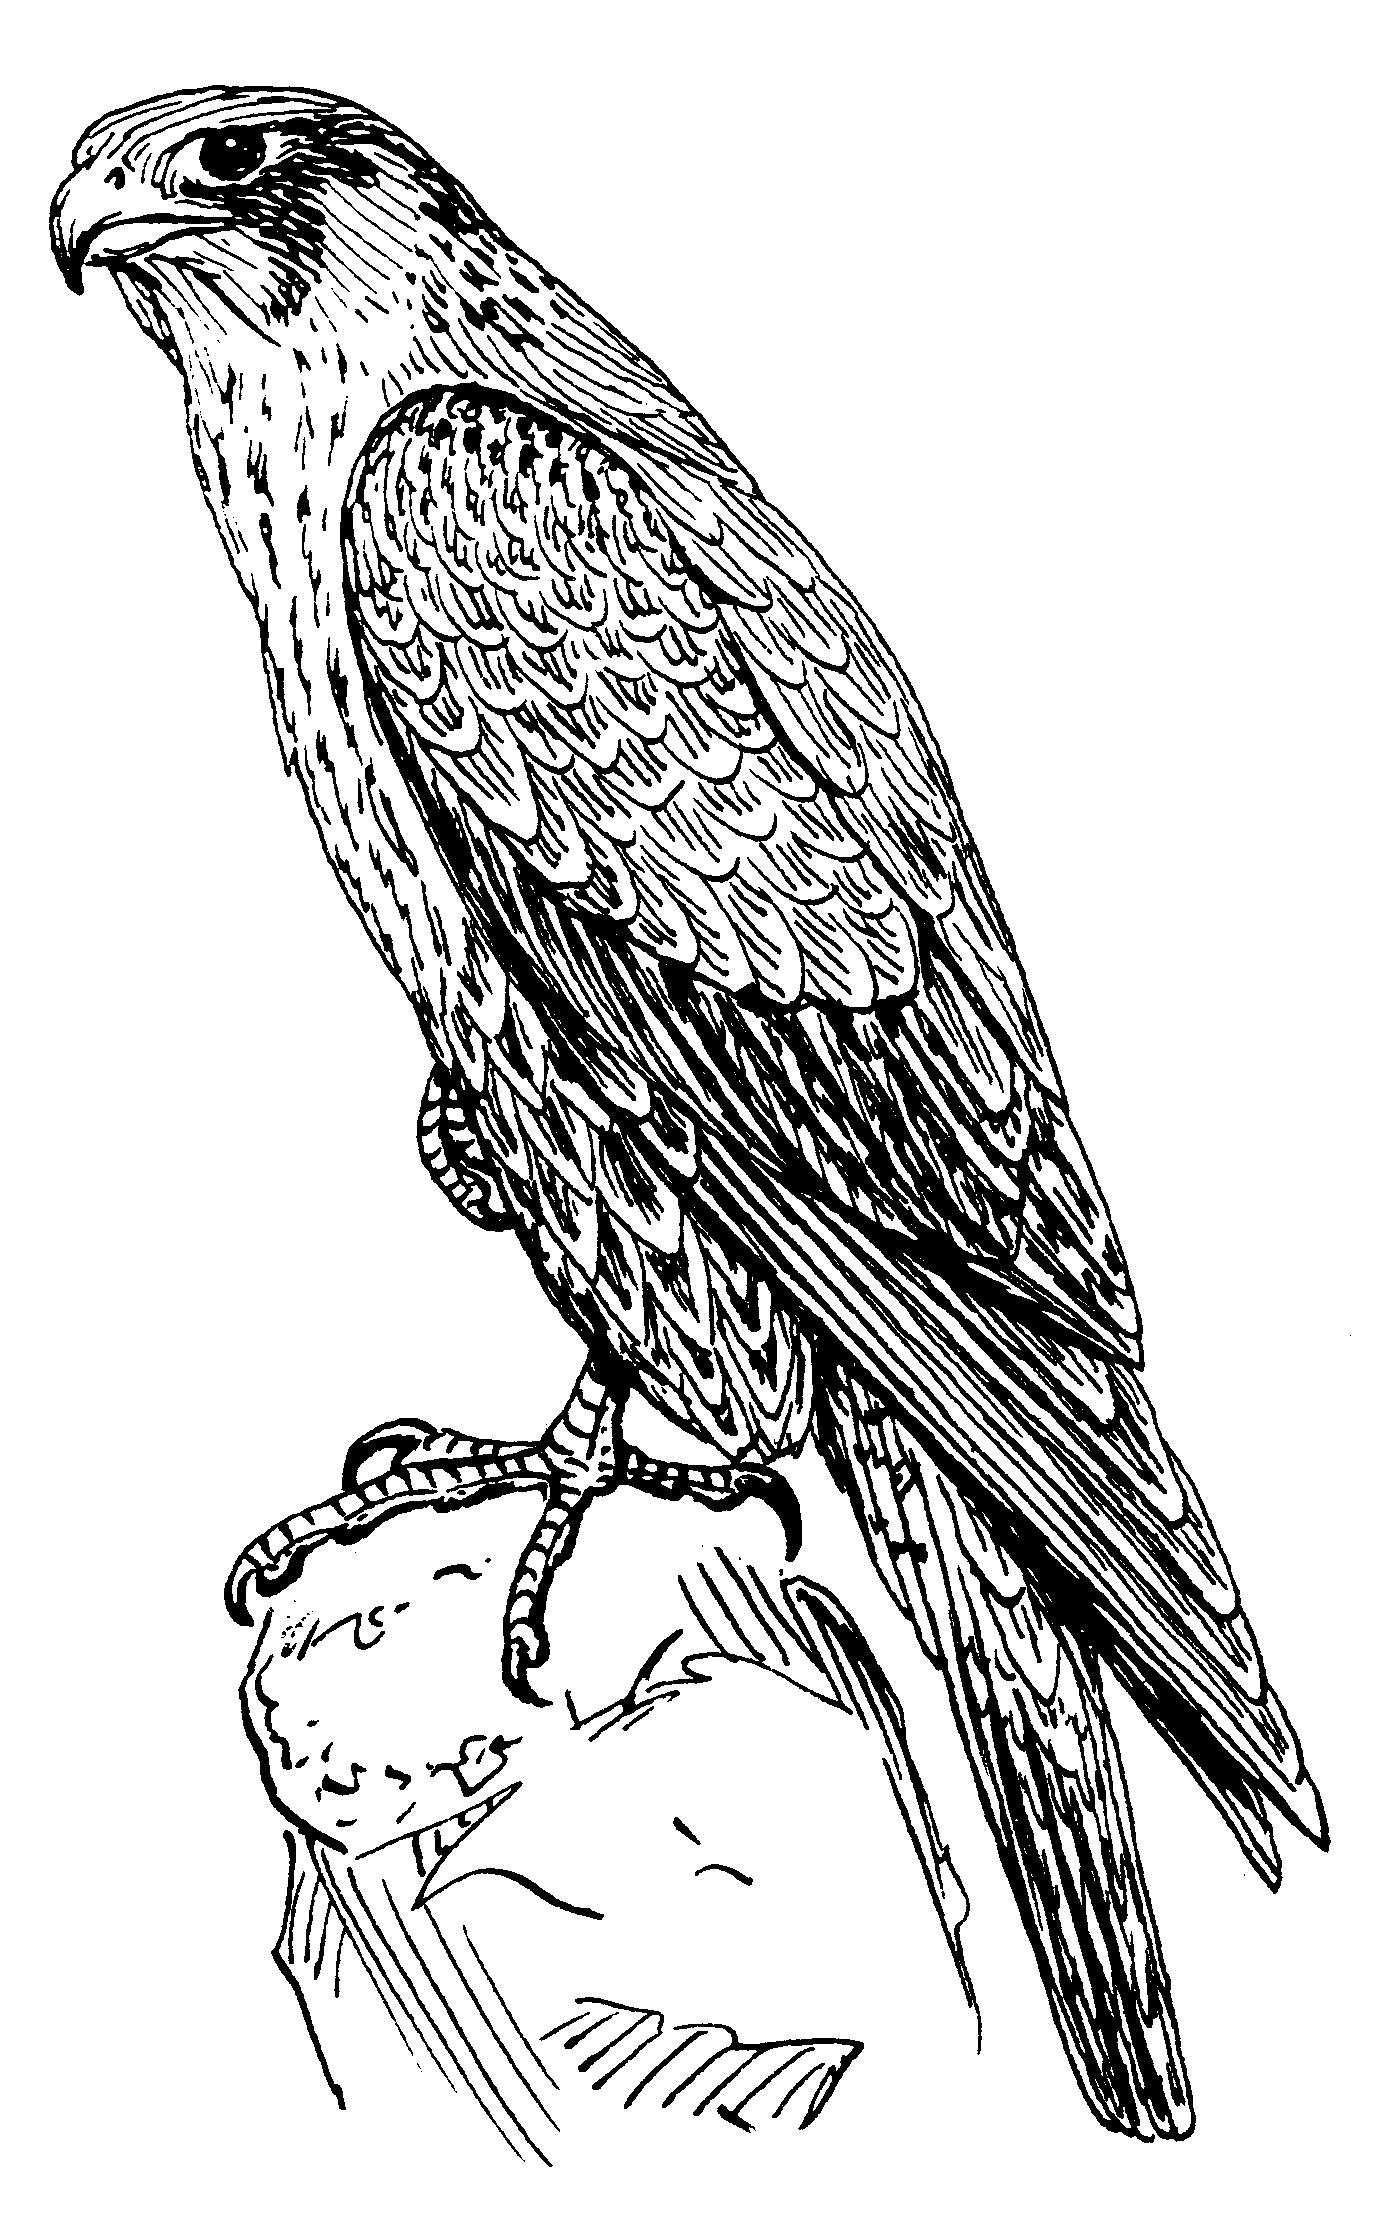 Peregrine Falcon Drawings FilePeregrine falcon (PSF